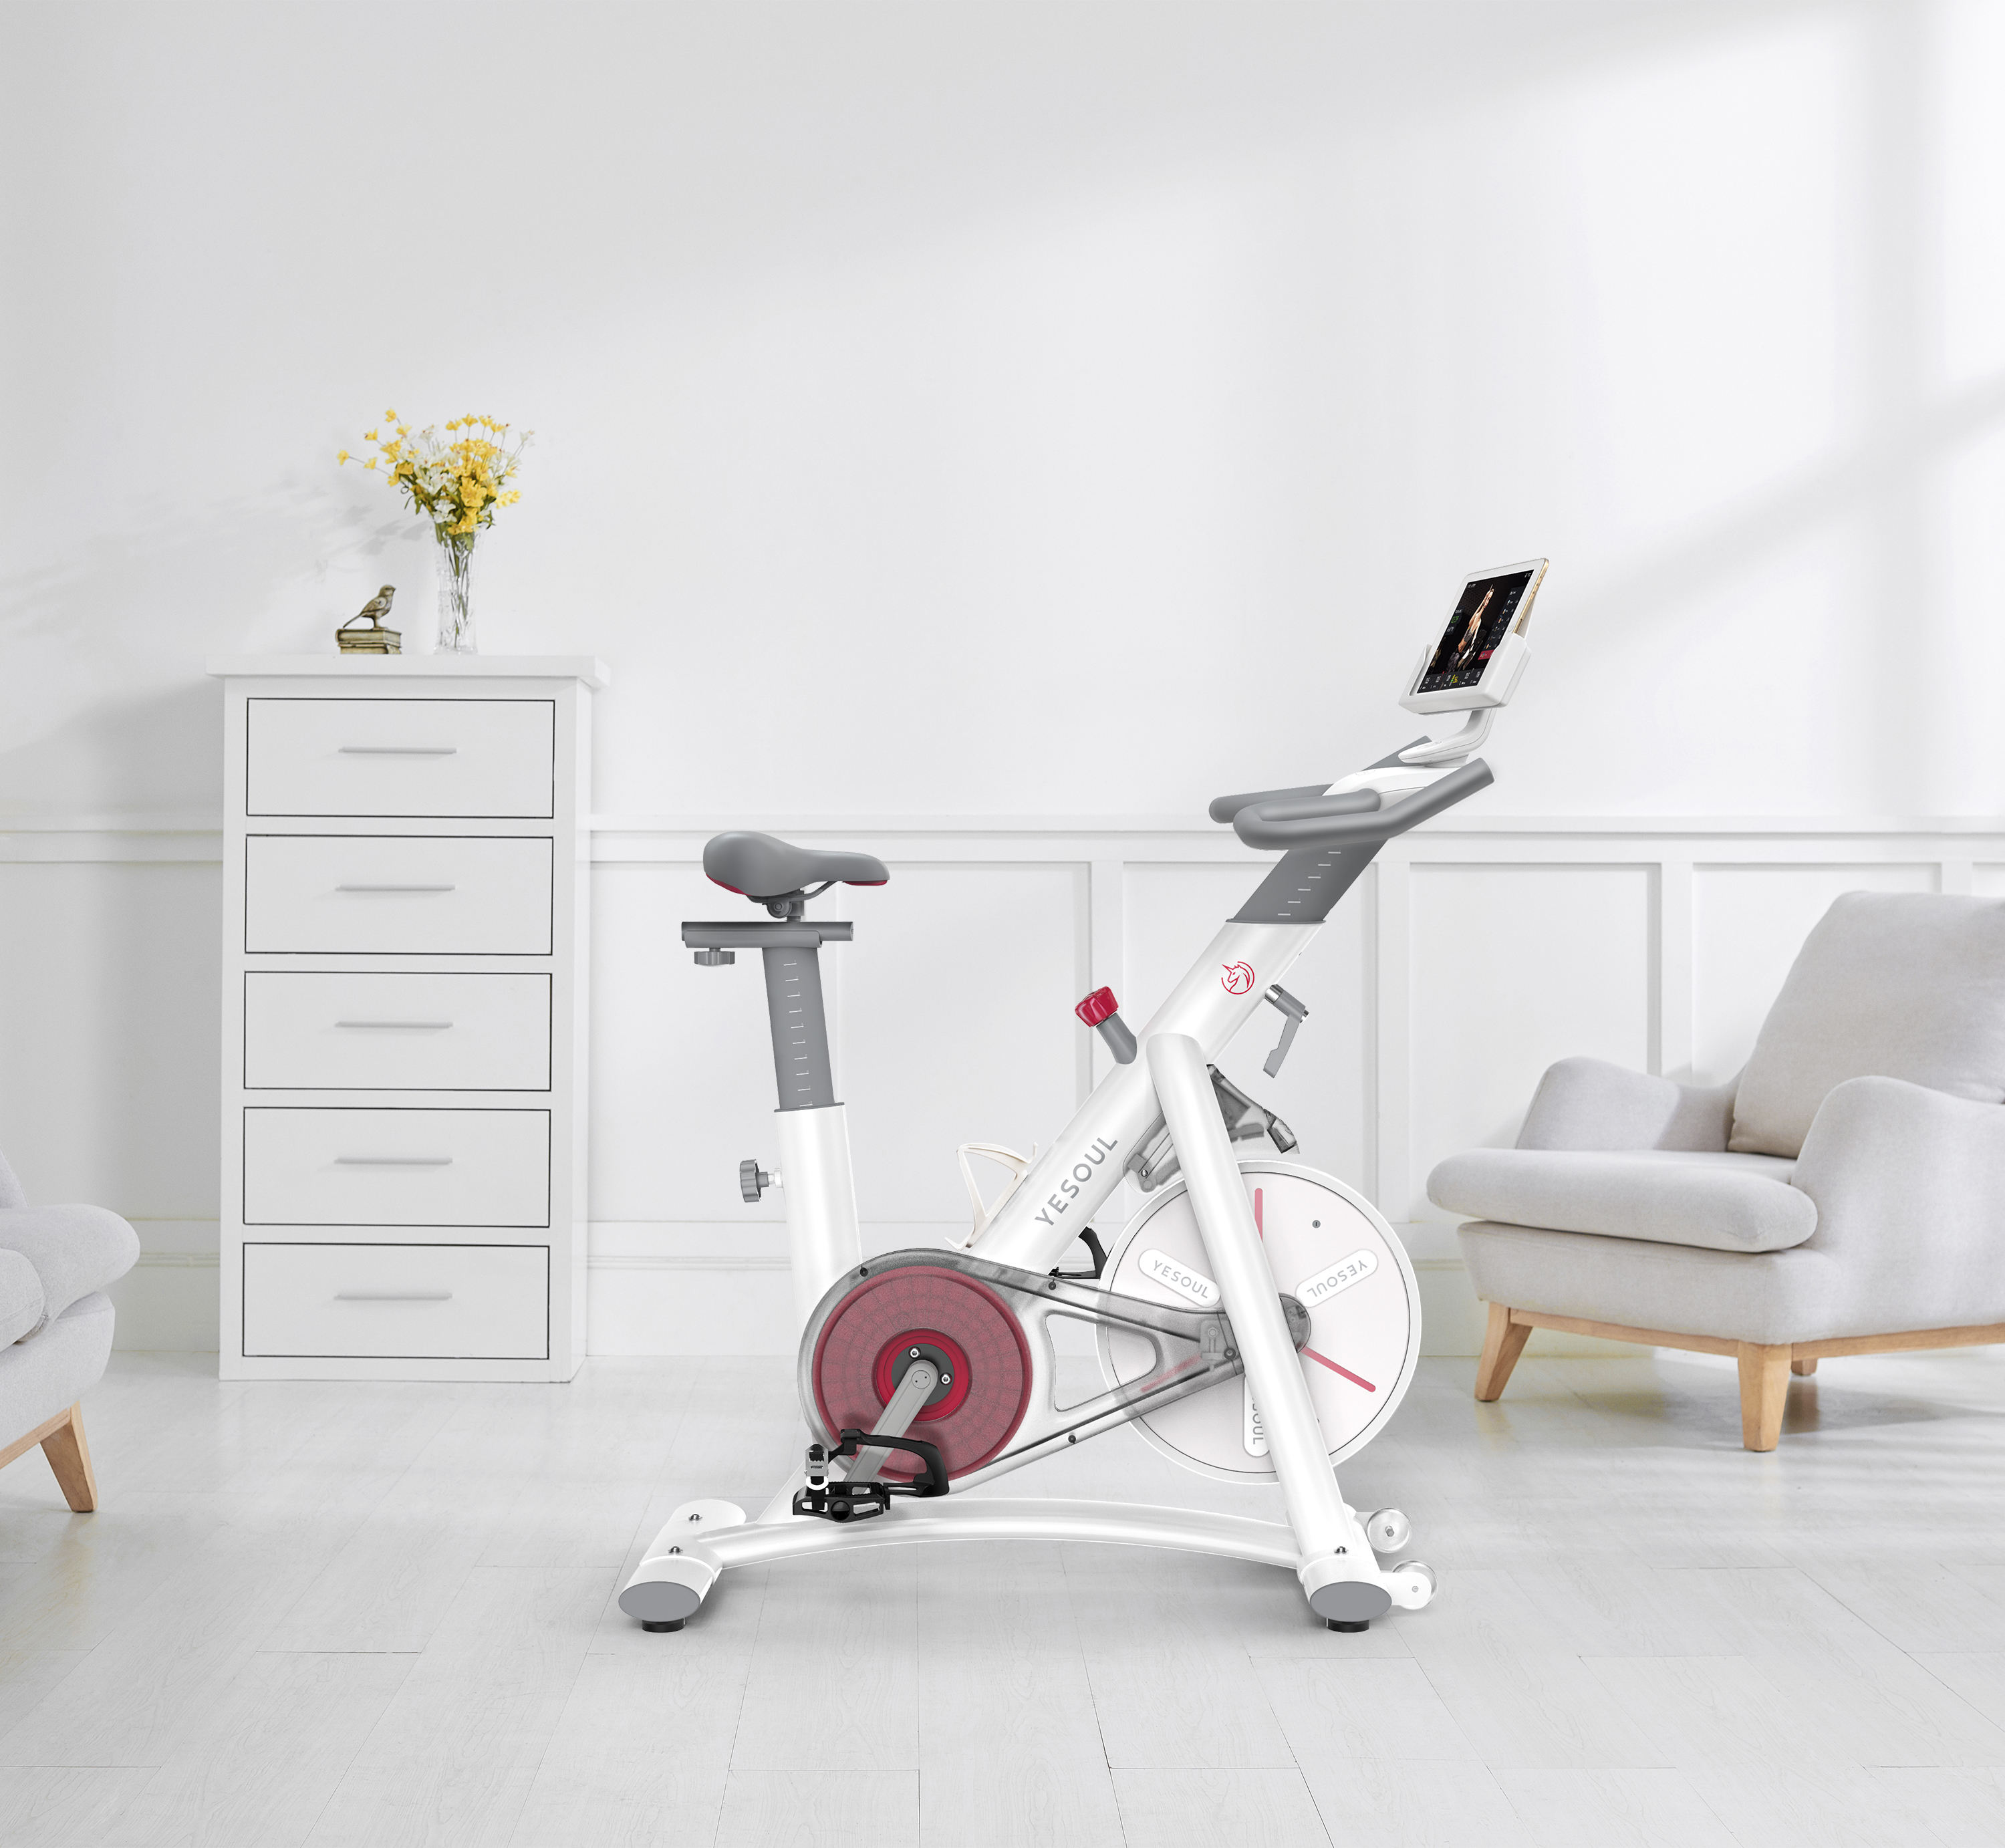 EU in stock YESOUL S3 woman home spinning bike ultra-quiet Indoor exercise health fitness equipment weight loss gym running bike